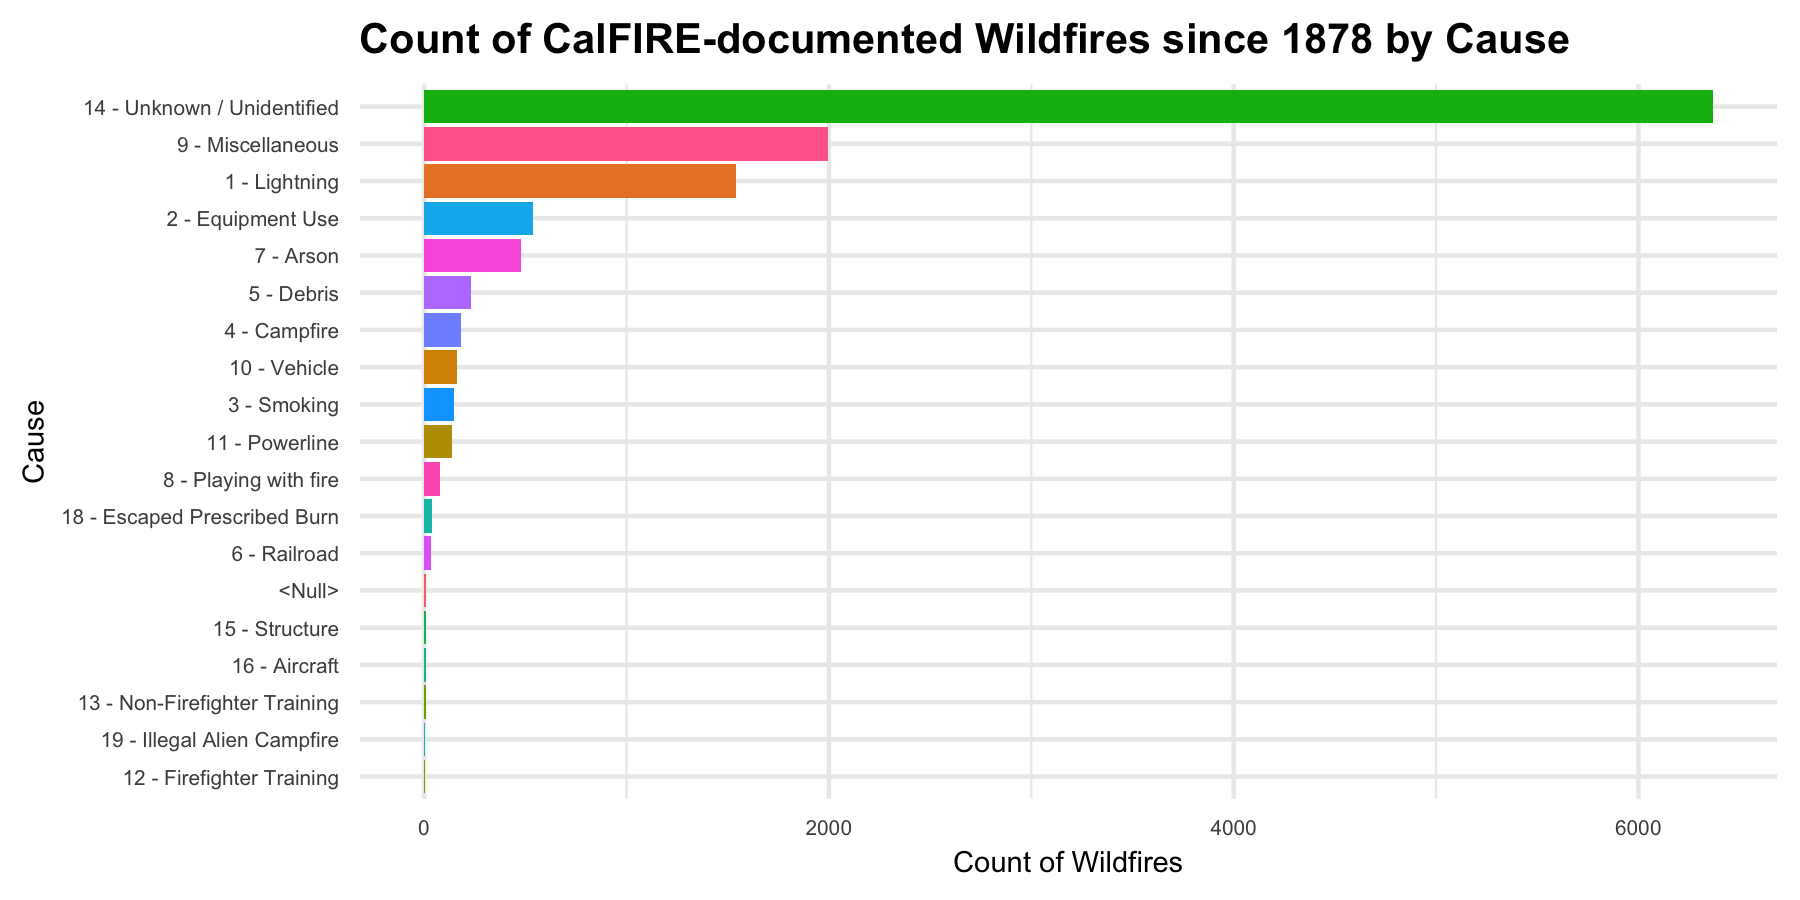 Figure 1: Plot counting wildfires in California by cause. In the plot, the fewest fires have been attributed to illegal alien campfires and firefighter training.